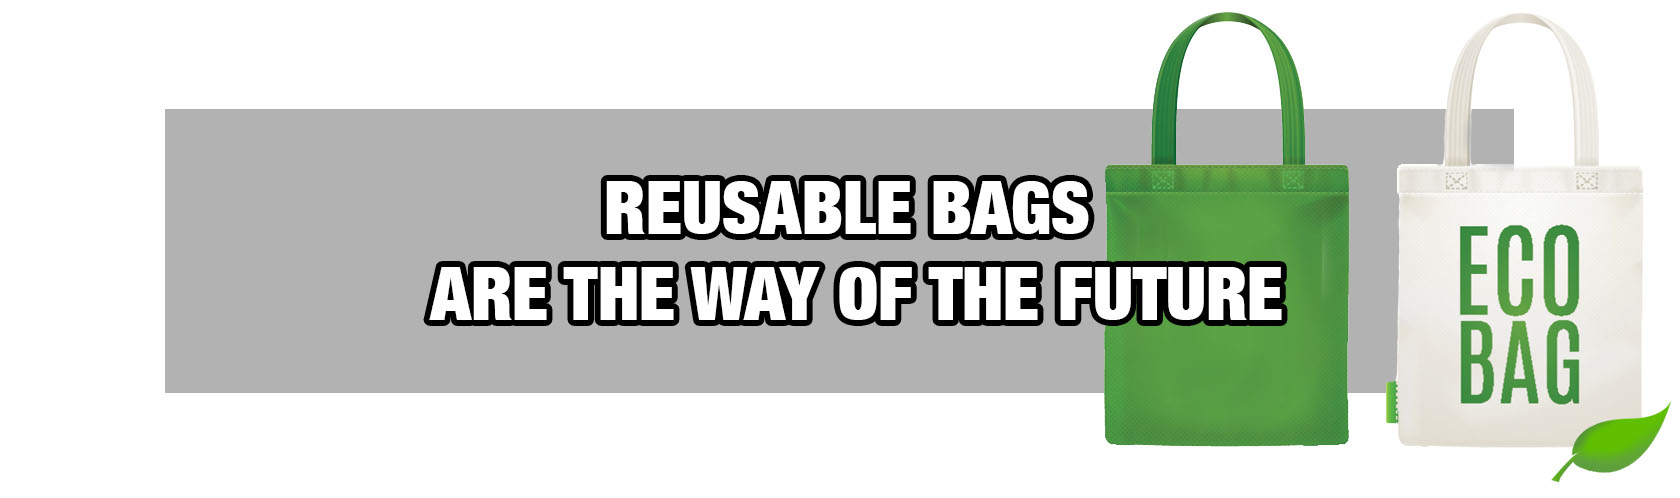 Reusable Bags are the Way of the Future